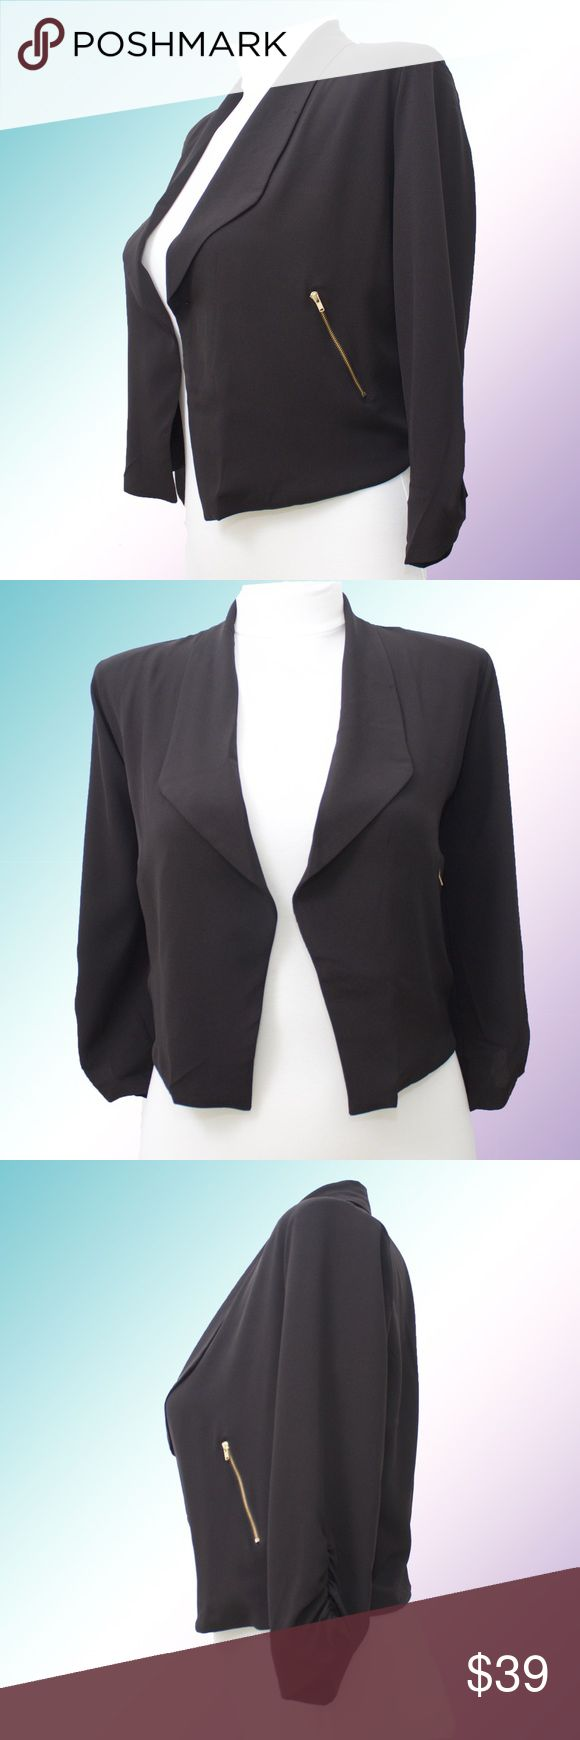 🎉SALE! Plus Size Lightweight Drape Front Blazer Super lightweight draped front blazer with 3/4 ruched sleeves and gold zipper faux pockets. This cute blazer can go from day to evening and goes with everything. The lightweight fabric also keeps you cool in any season. Available in sizes 1x, 2x, 3x with limited stock! More blazers and plus size pieces coming soon! Shop The Aivy's Closet for young, professional, fashionable and affordable attire! #affordable #workwear #office #attire Jackets…